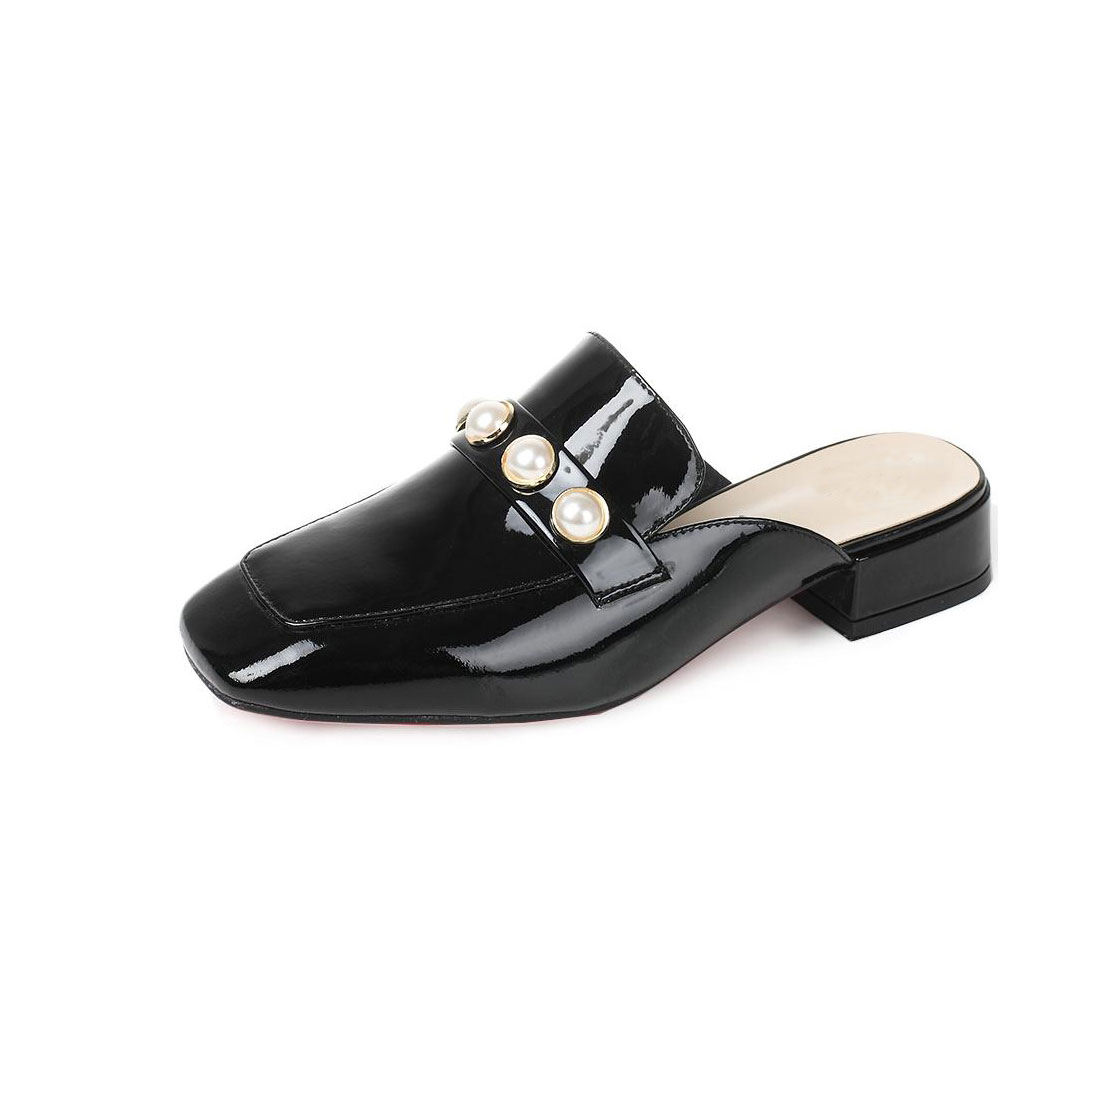 Patent leather upper with pearl lady slipper women casual flat shoes YH1169